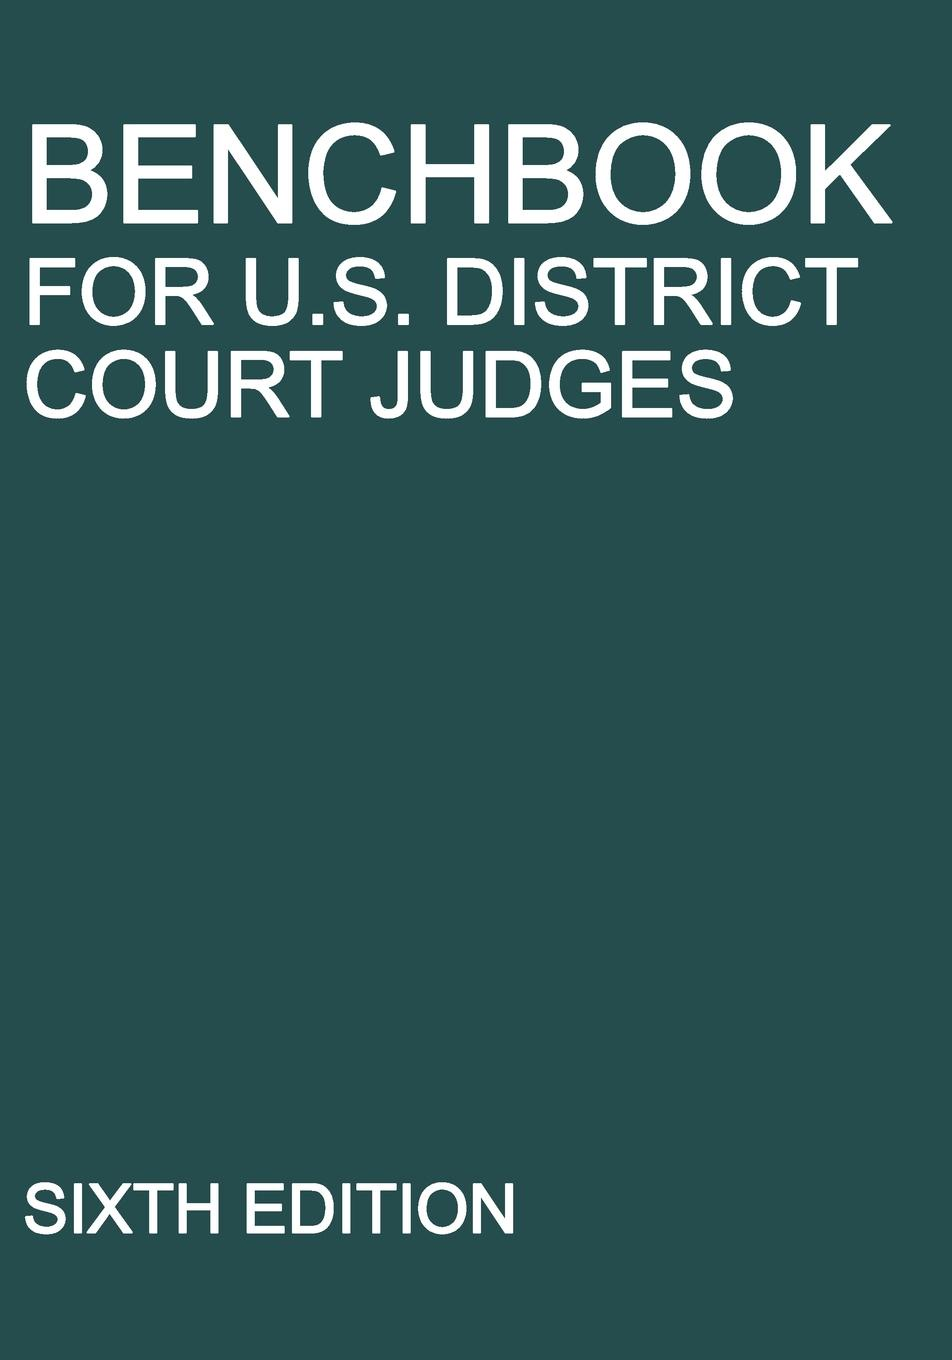 Michigan Legal Publishing Ltd. Benchbook for U.S. District Court Judges. Sixth Edition programs in aid of the poor sixth edition